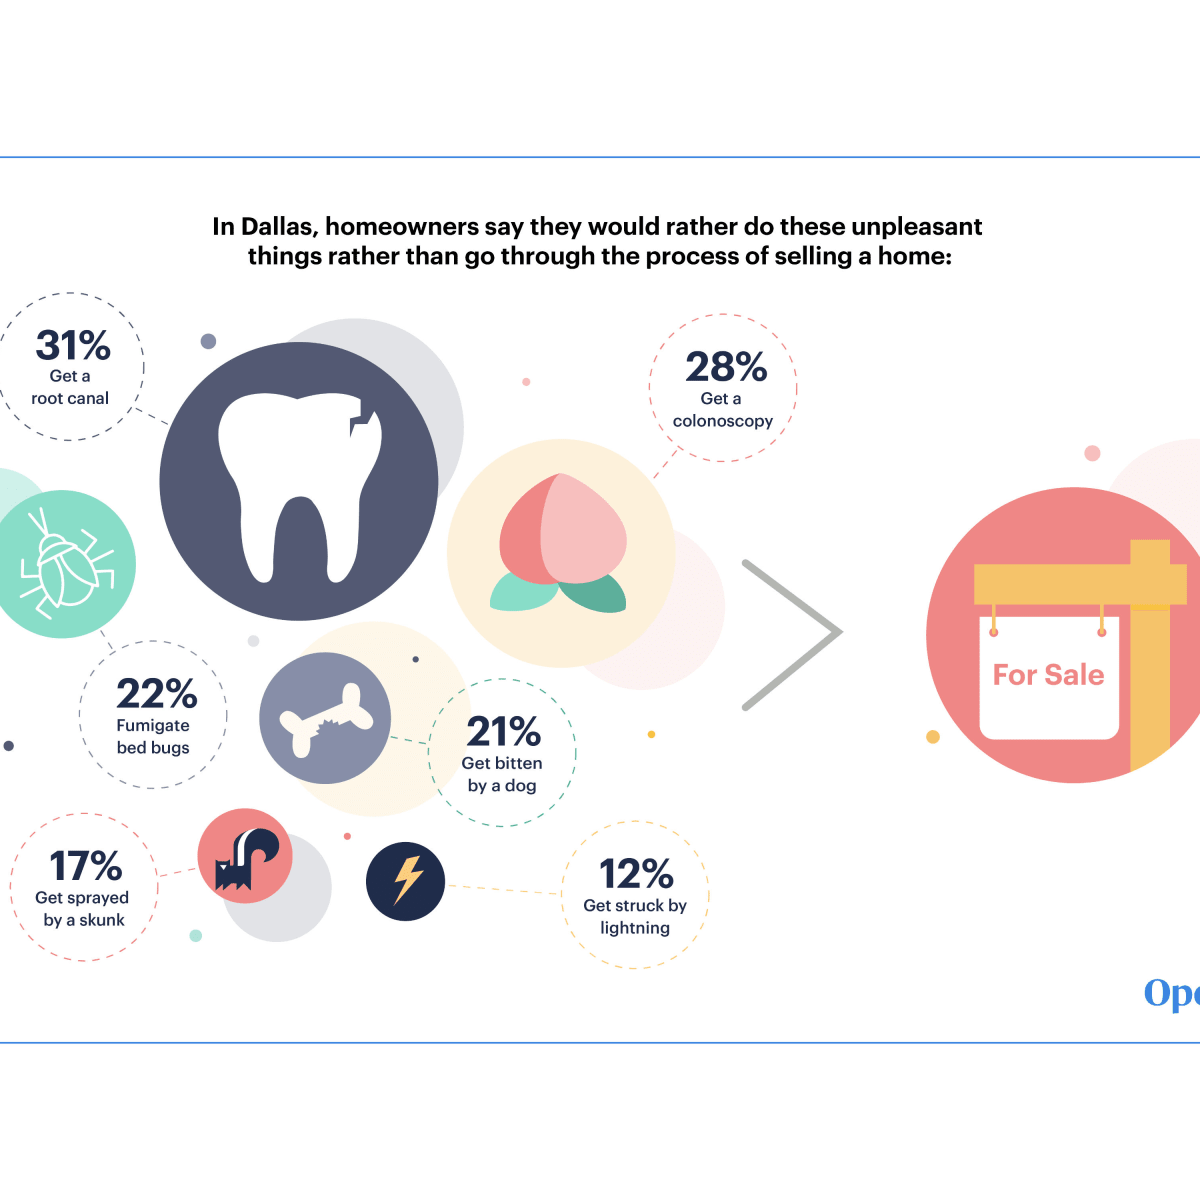 Homeowners would rather infographic